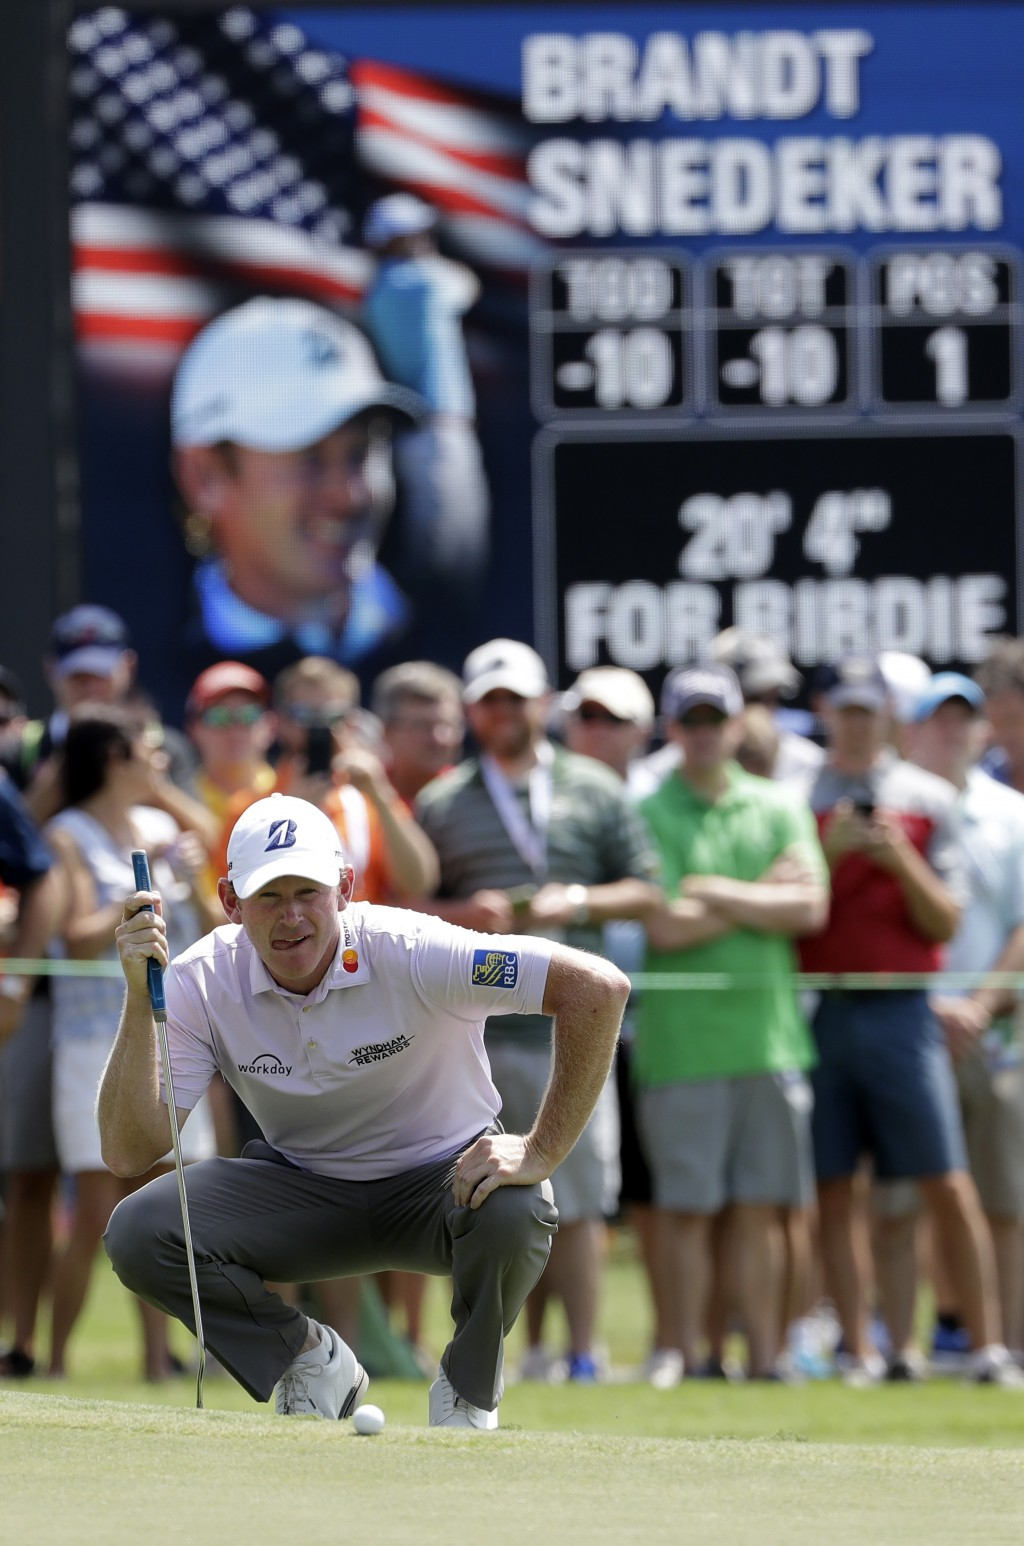 Brandt Snedeker lines up a birdie putt on the ninth hole during the first round of the Wyndham Championship golf tournament in Greensboro, N.C., Thurs...